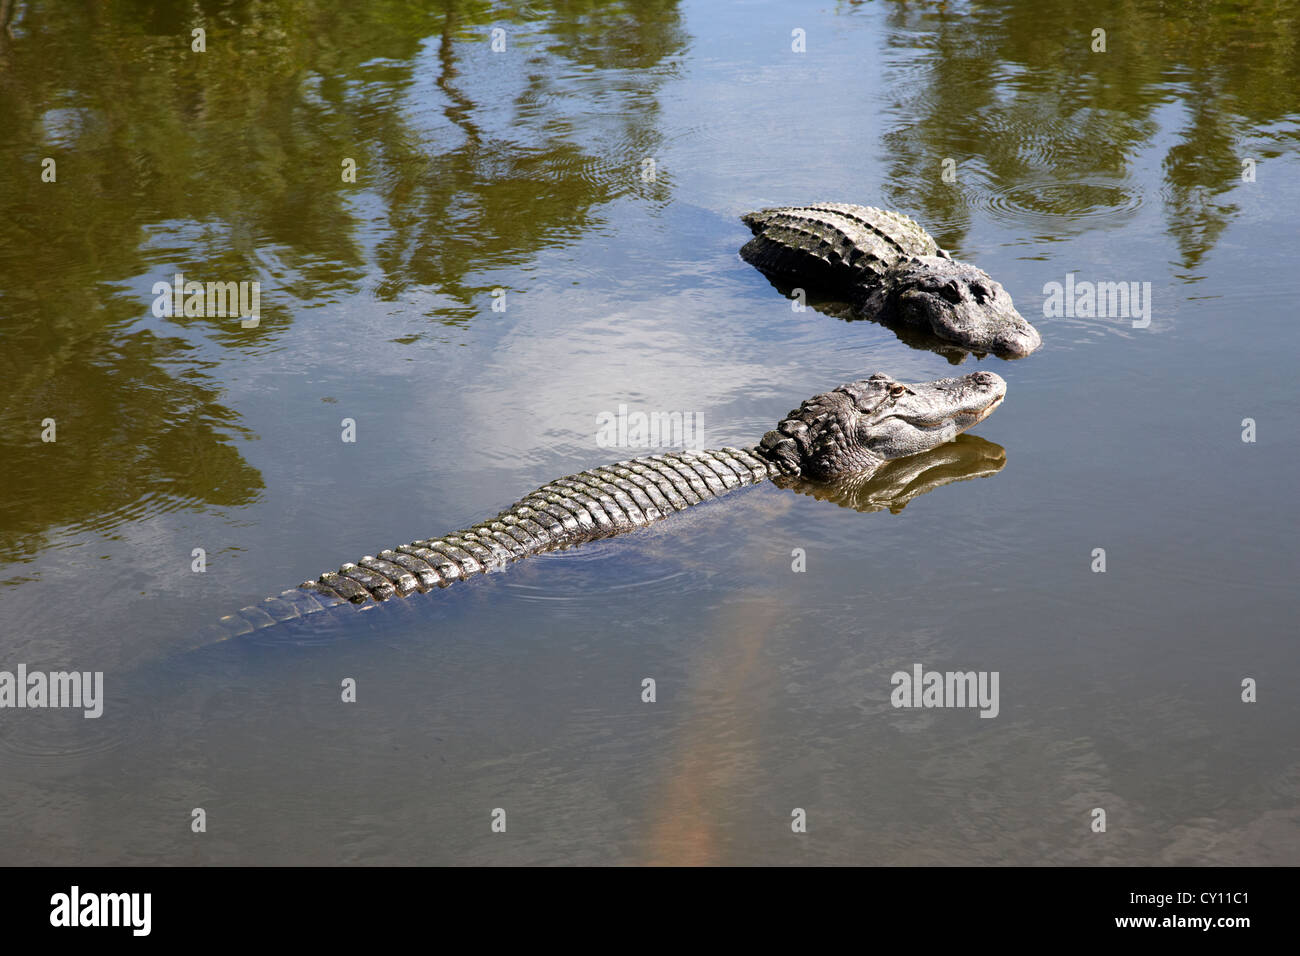 two large american alligators standing on underwater log near water surface florida usa - Stock Image